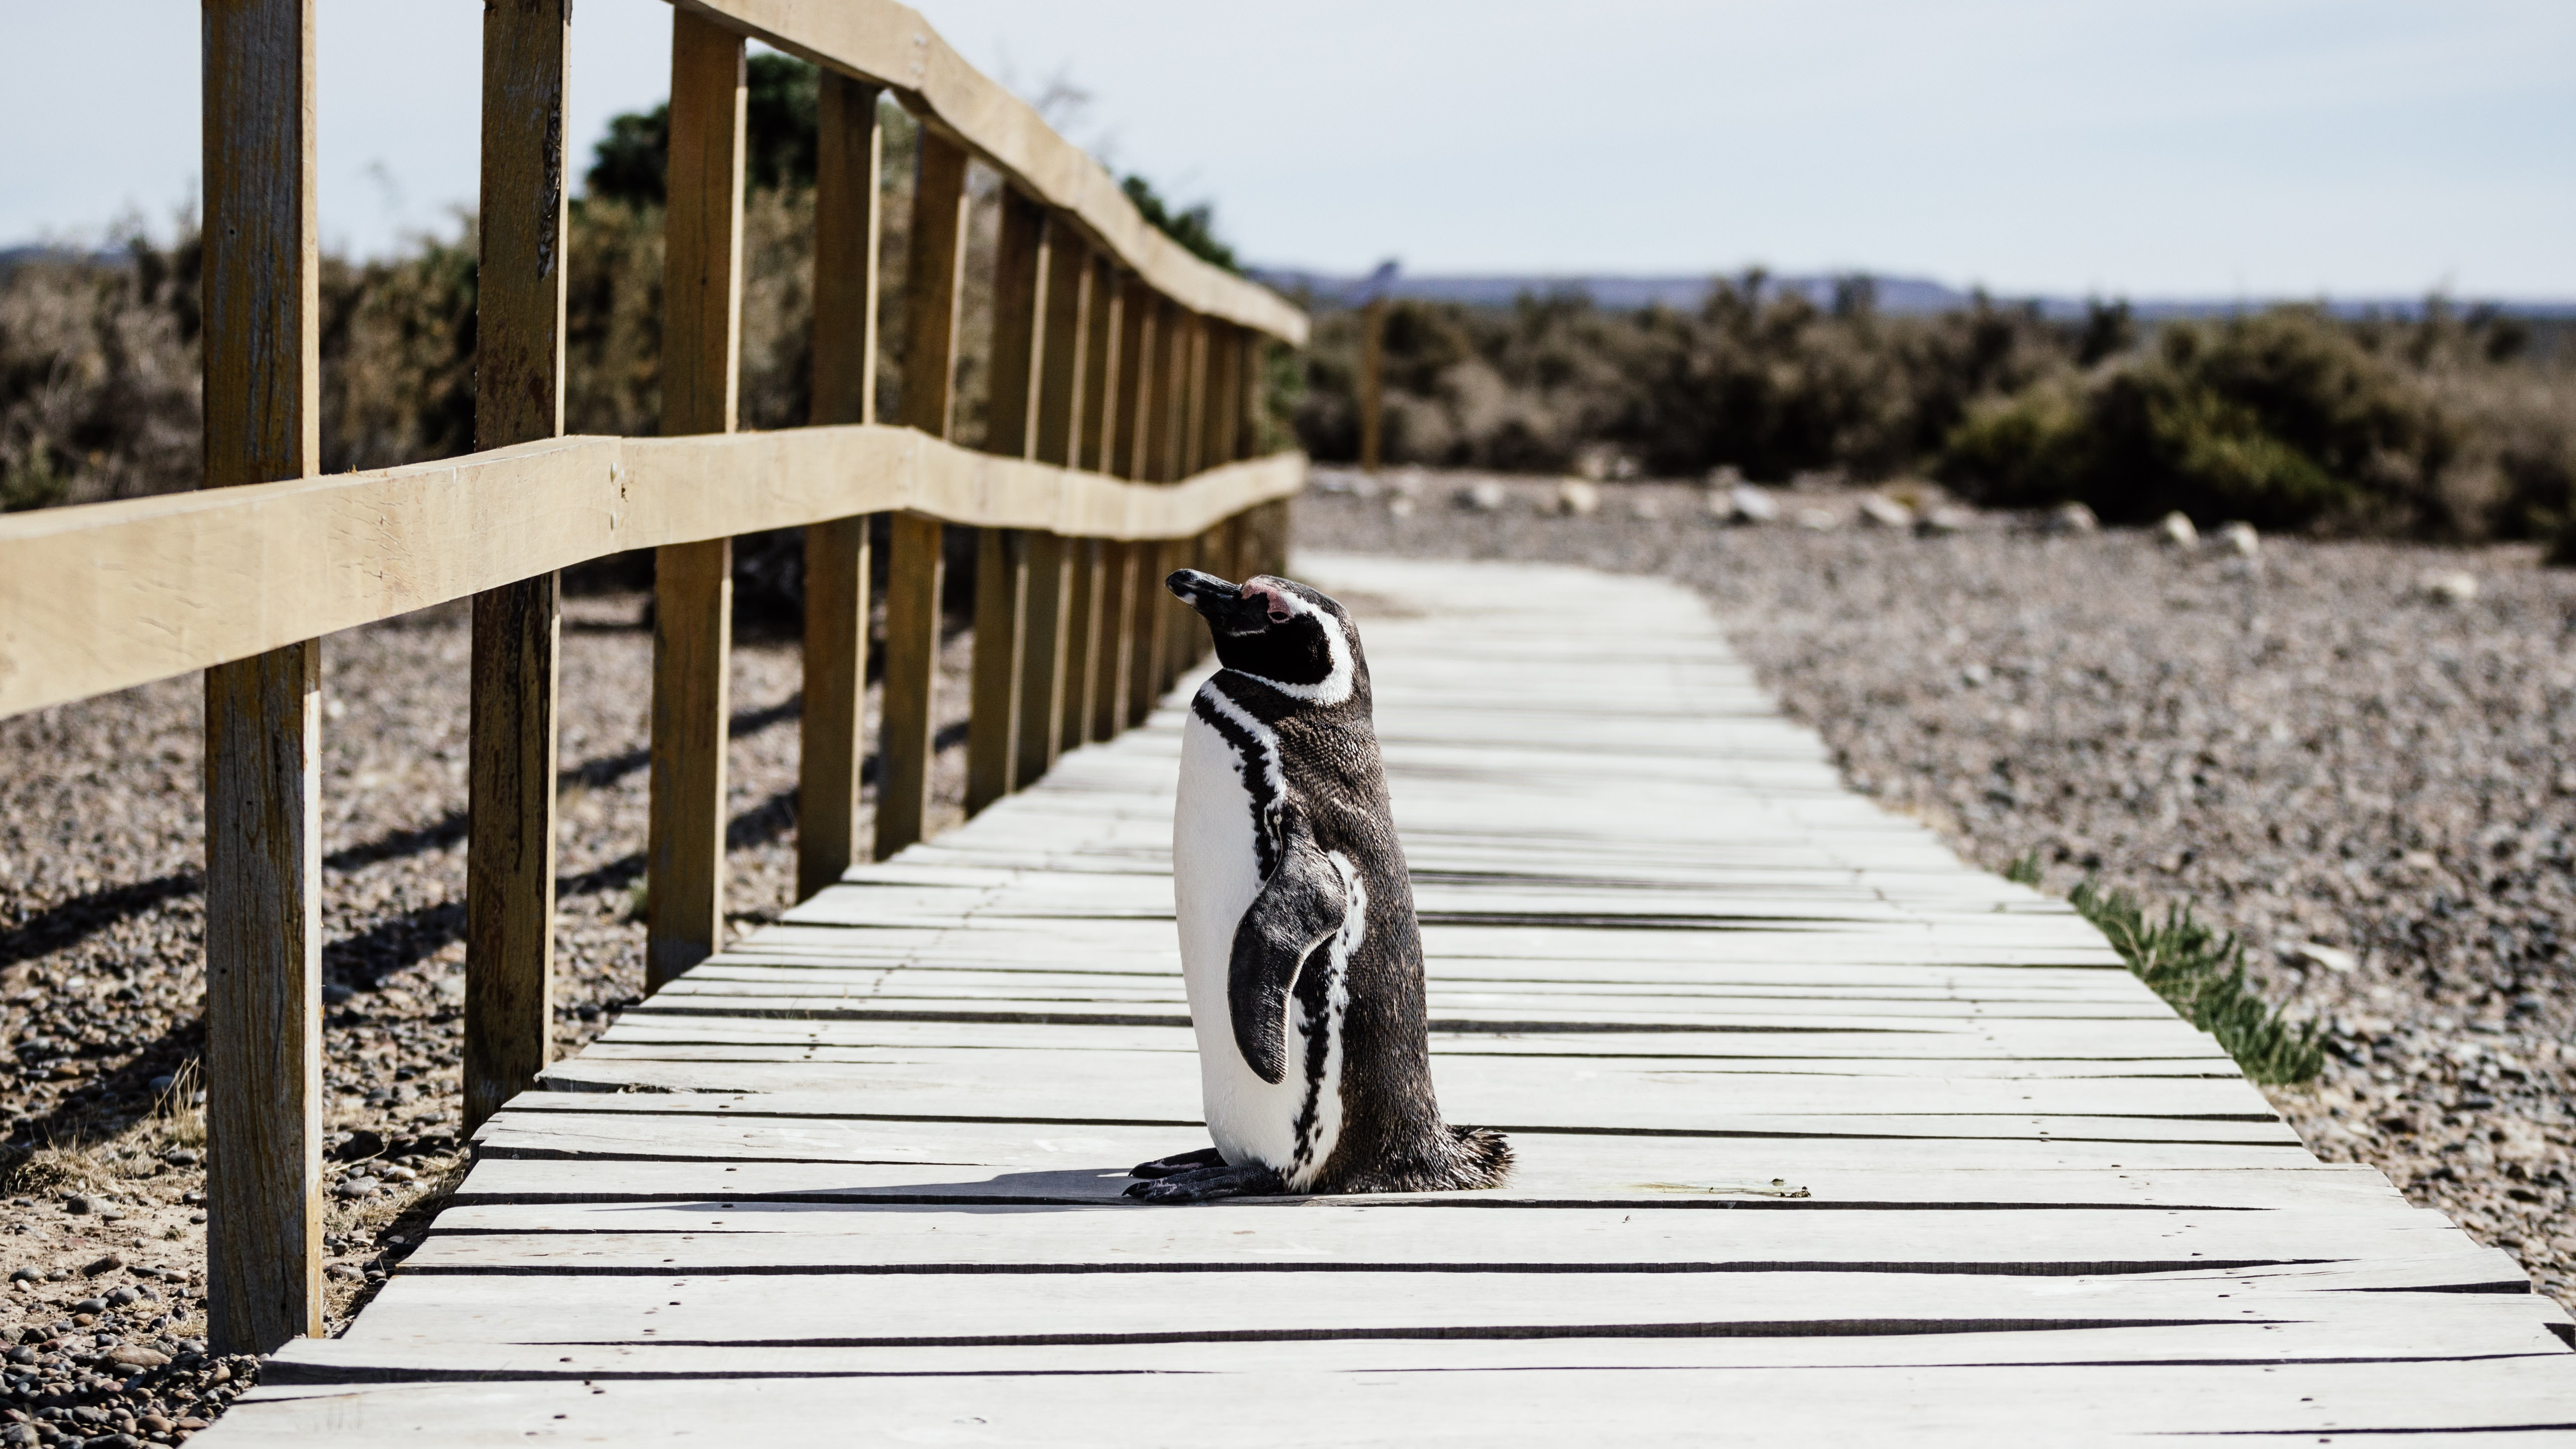 penguin standing on brown wooden pathway near green leaf trees during daytime